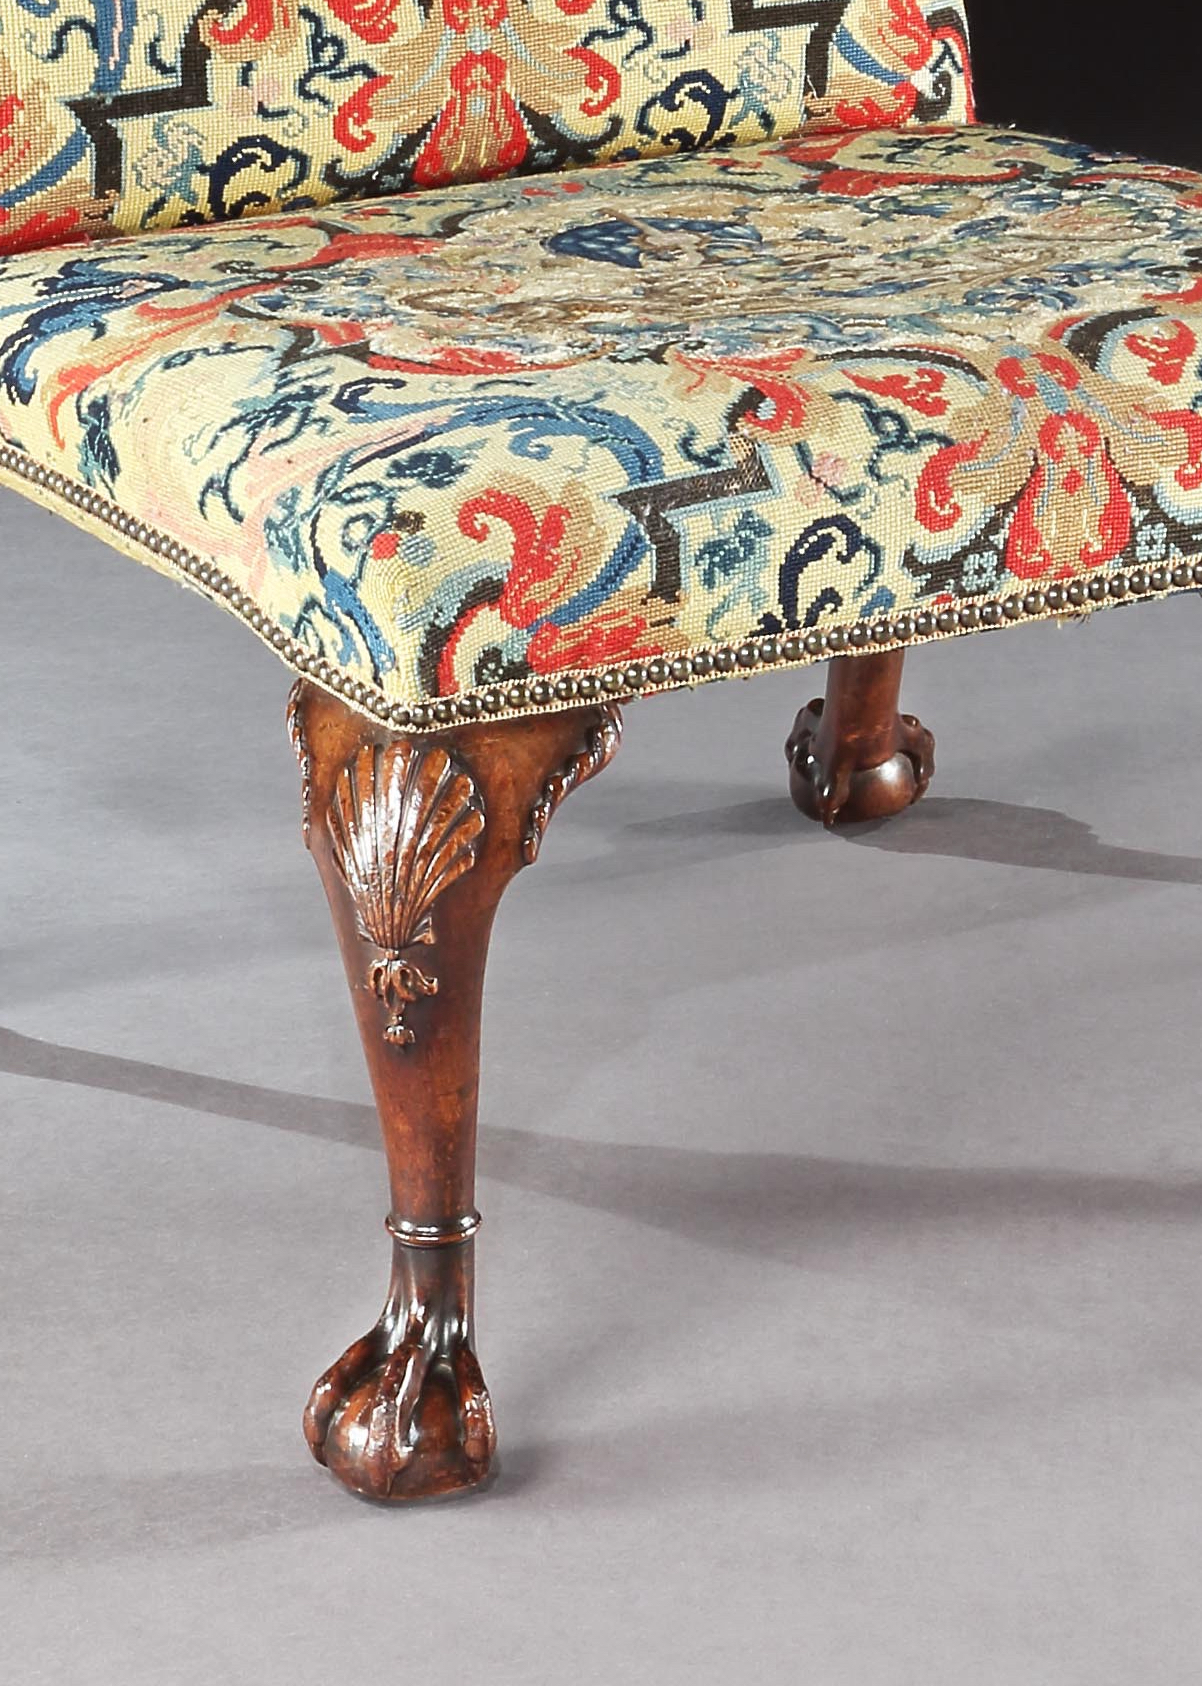 Spotting the shells georgian furniture with a shell motif the